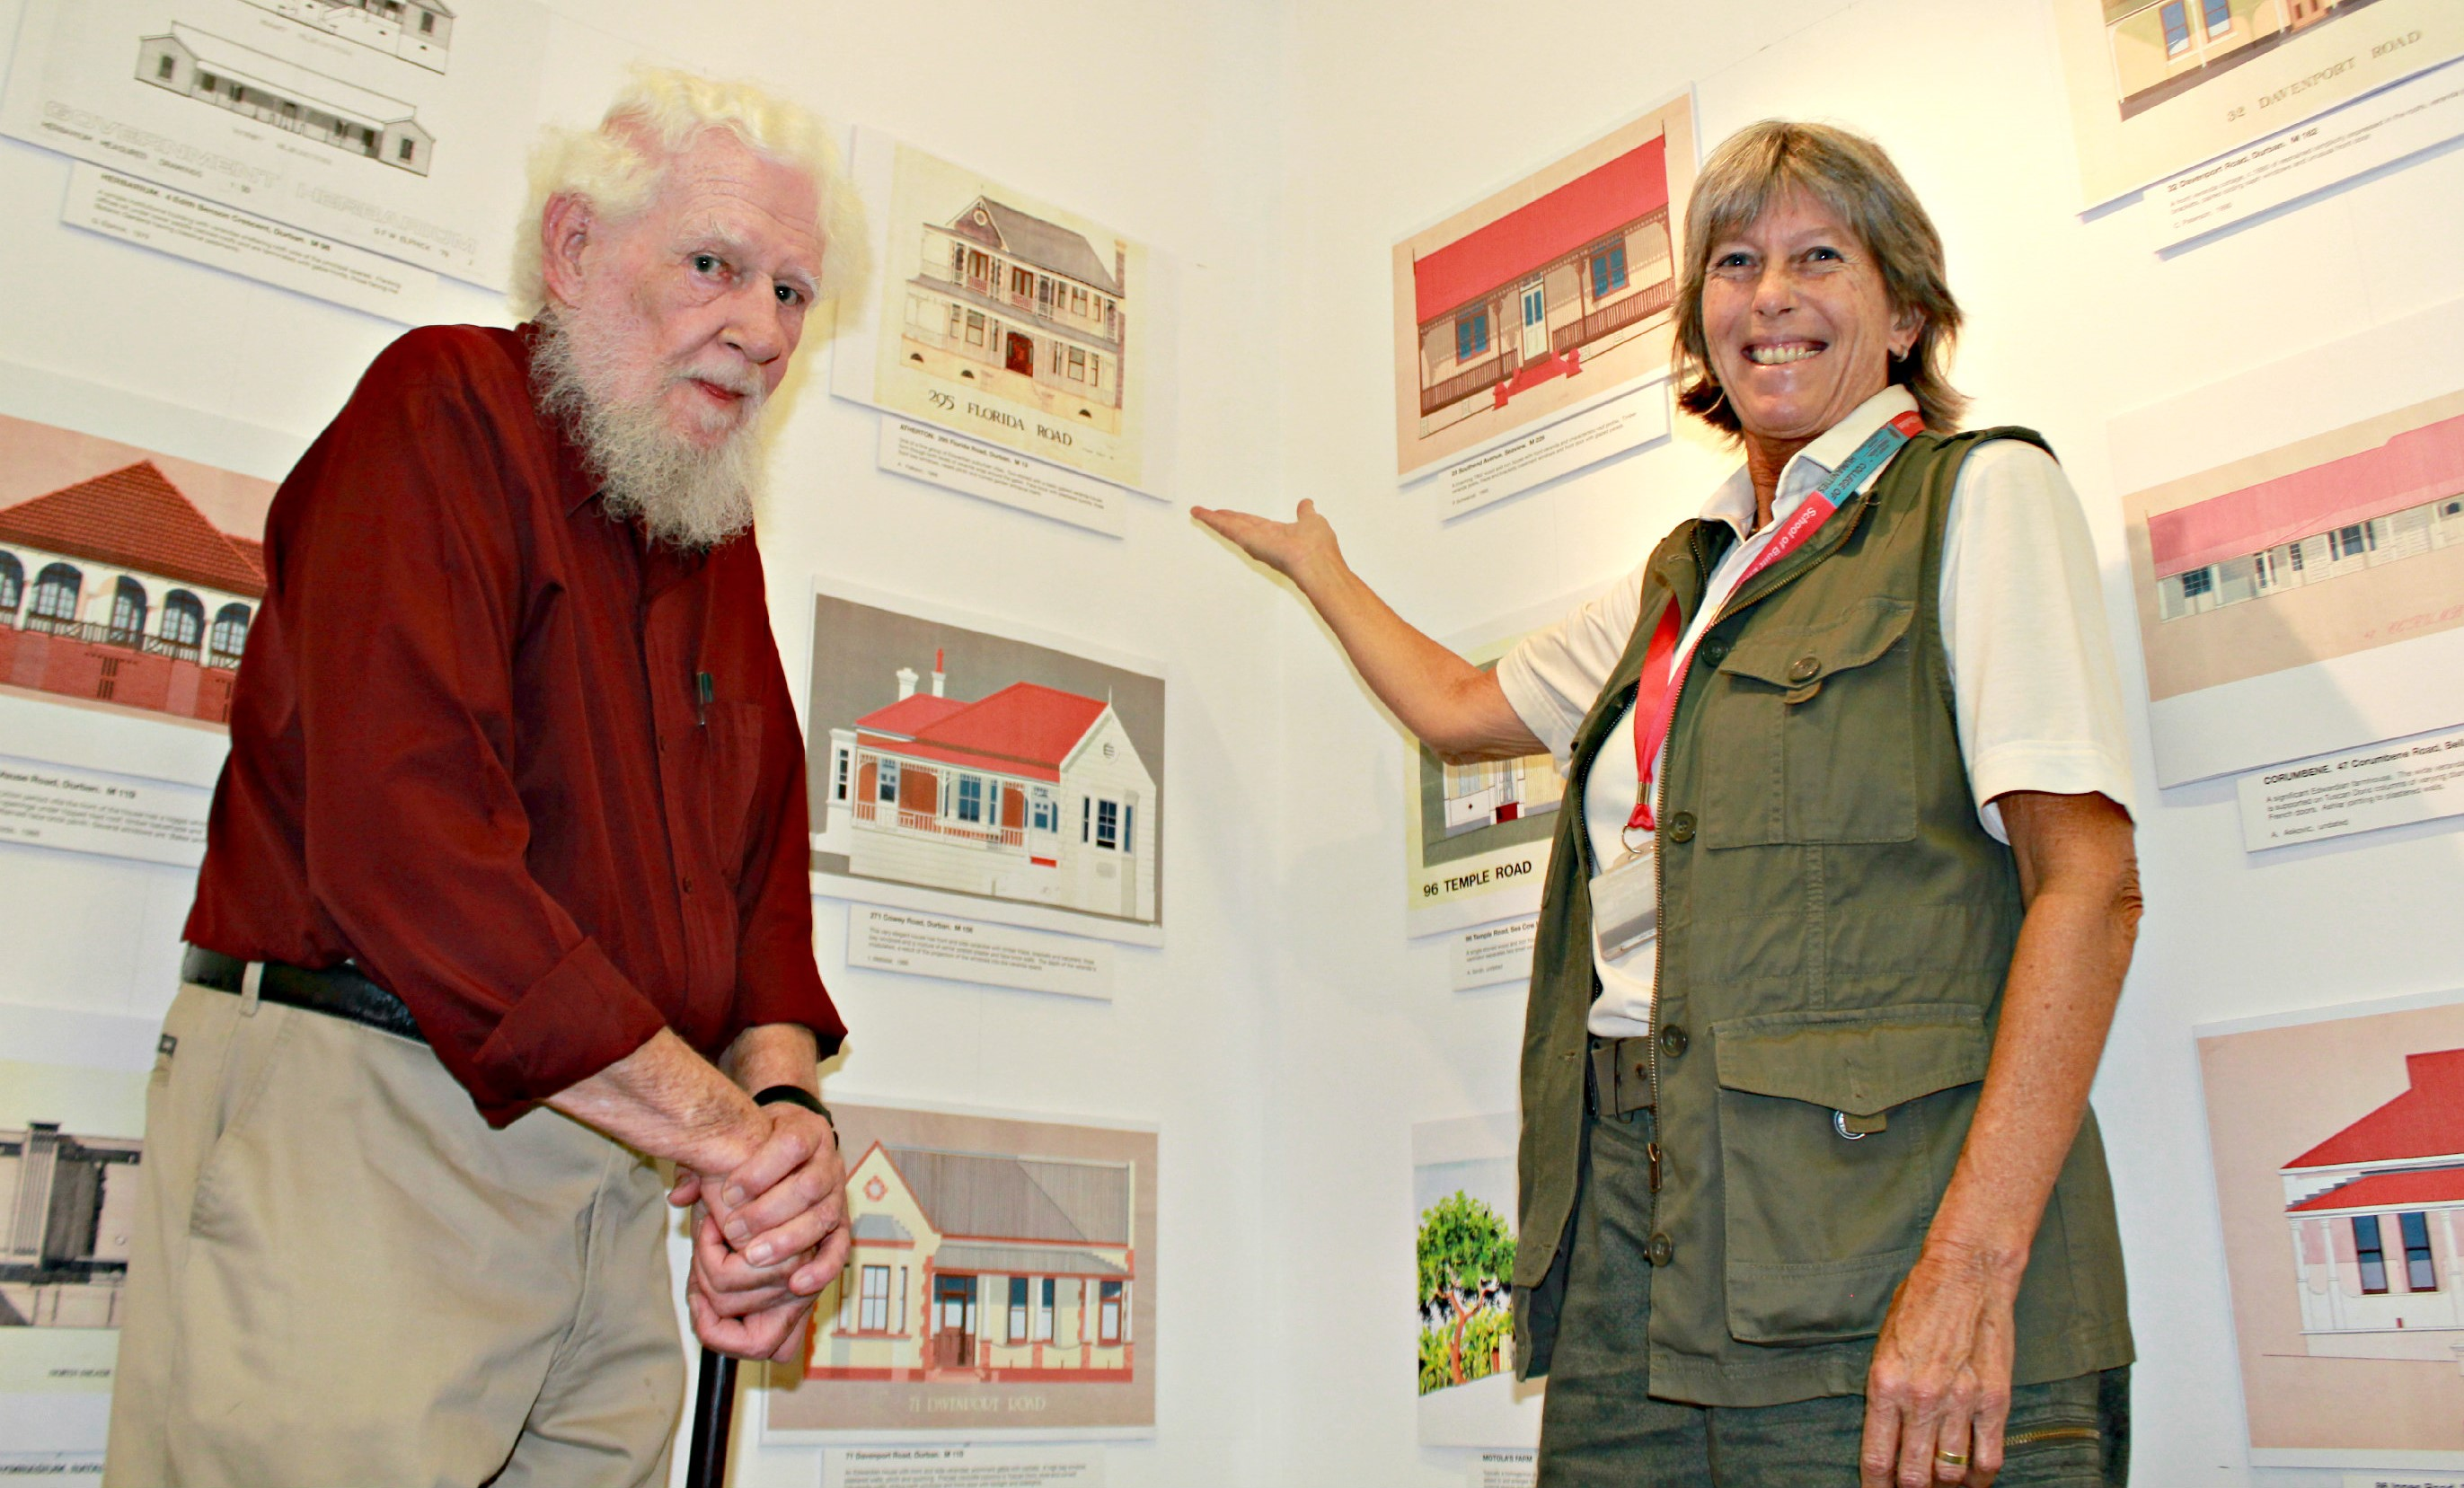 Professor Brian Kearney and Ms Michele Jacobs with some of the drawings and work from the UKZN architecture archives that feature in The Berea Style publication.